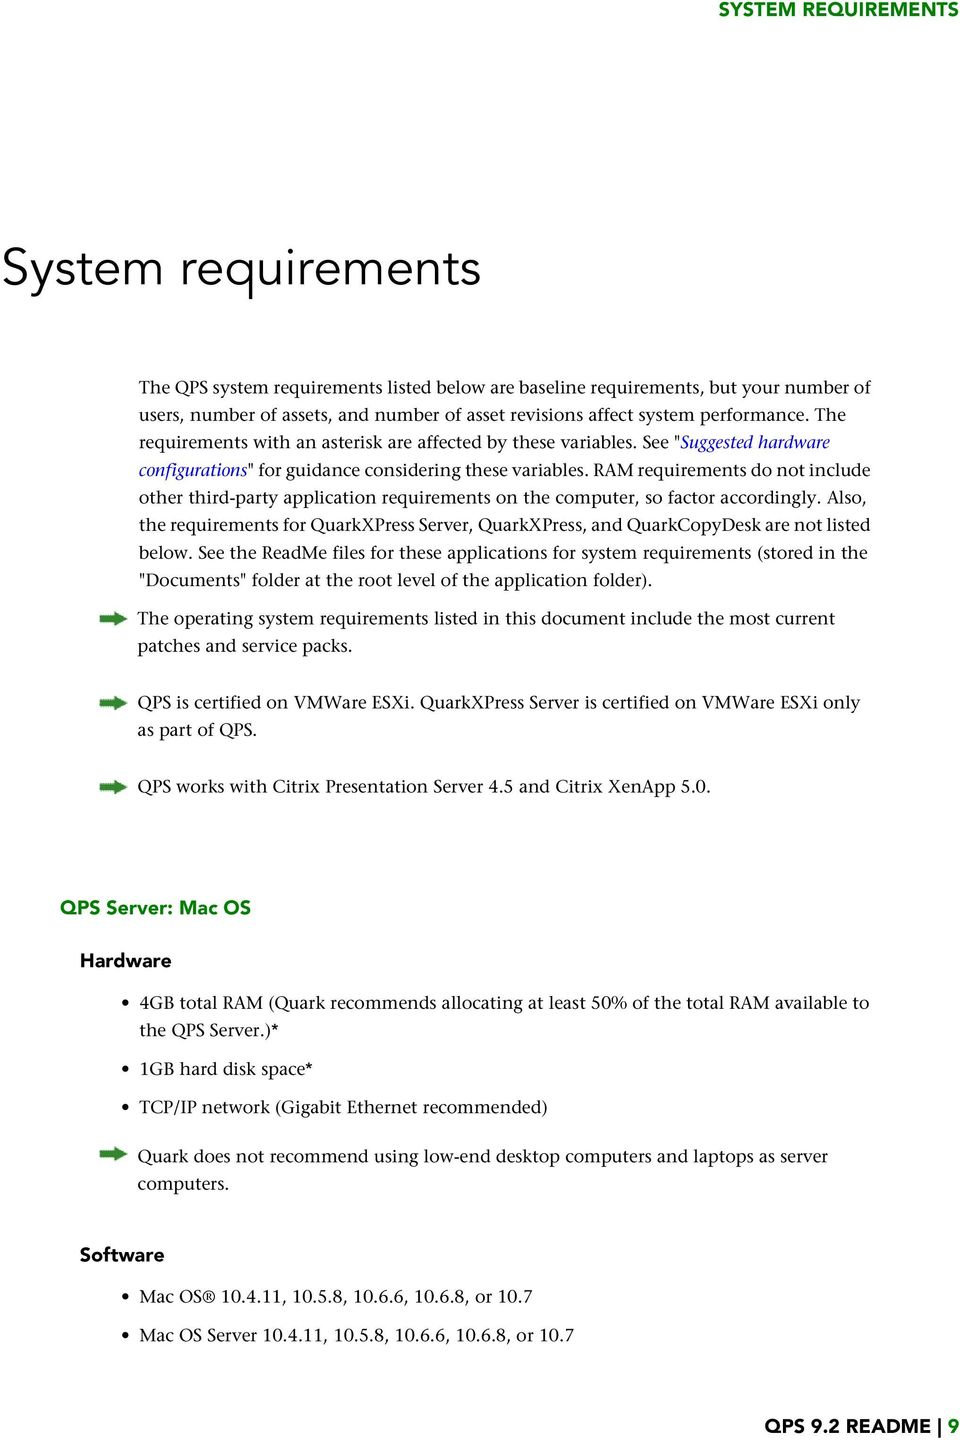 RAM requirements do not include other third-party application requirements on the computer, so factor accordingly.